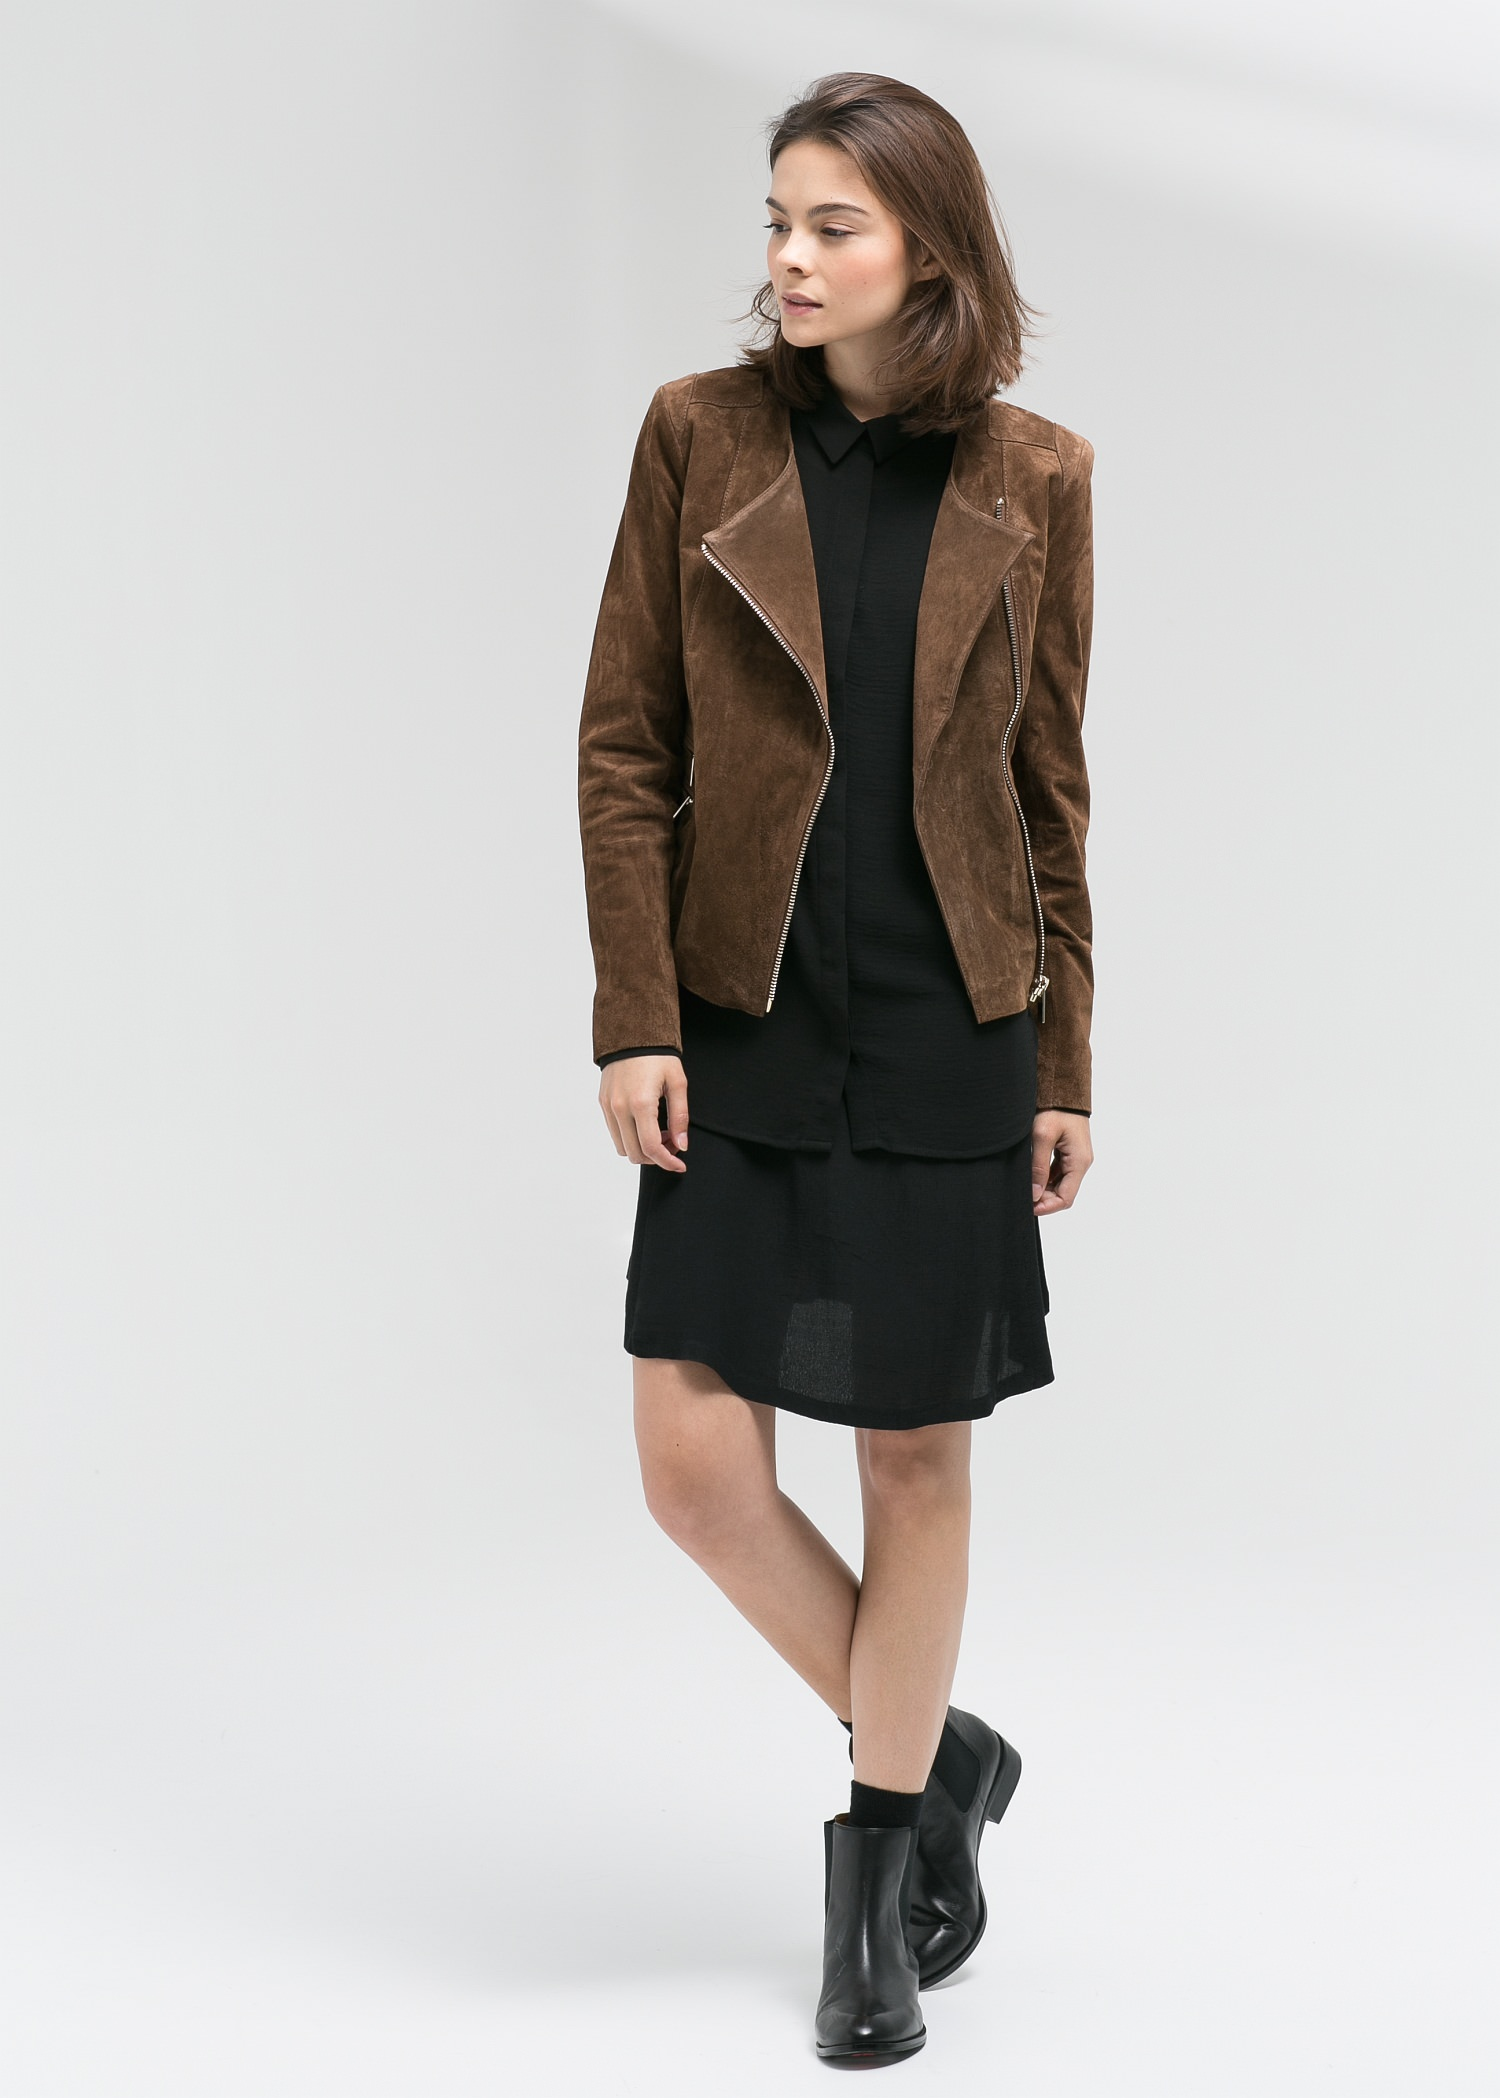 Peccary leather jacket - Jackets for Women | MANGO